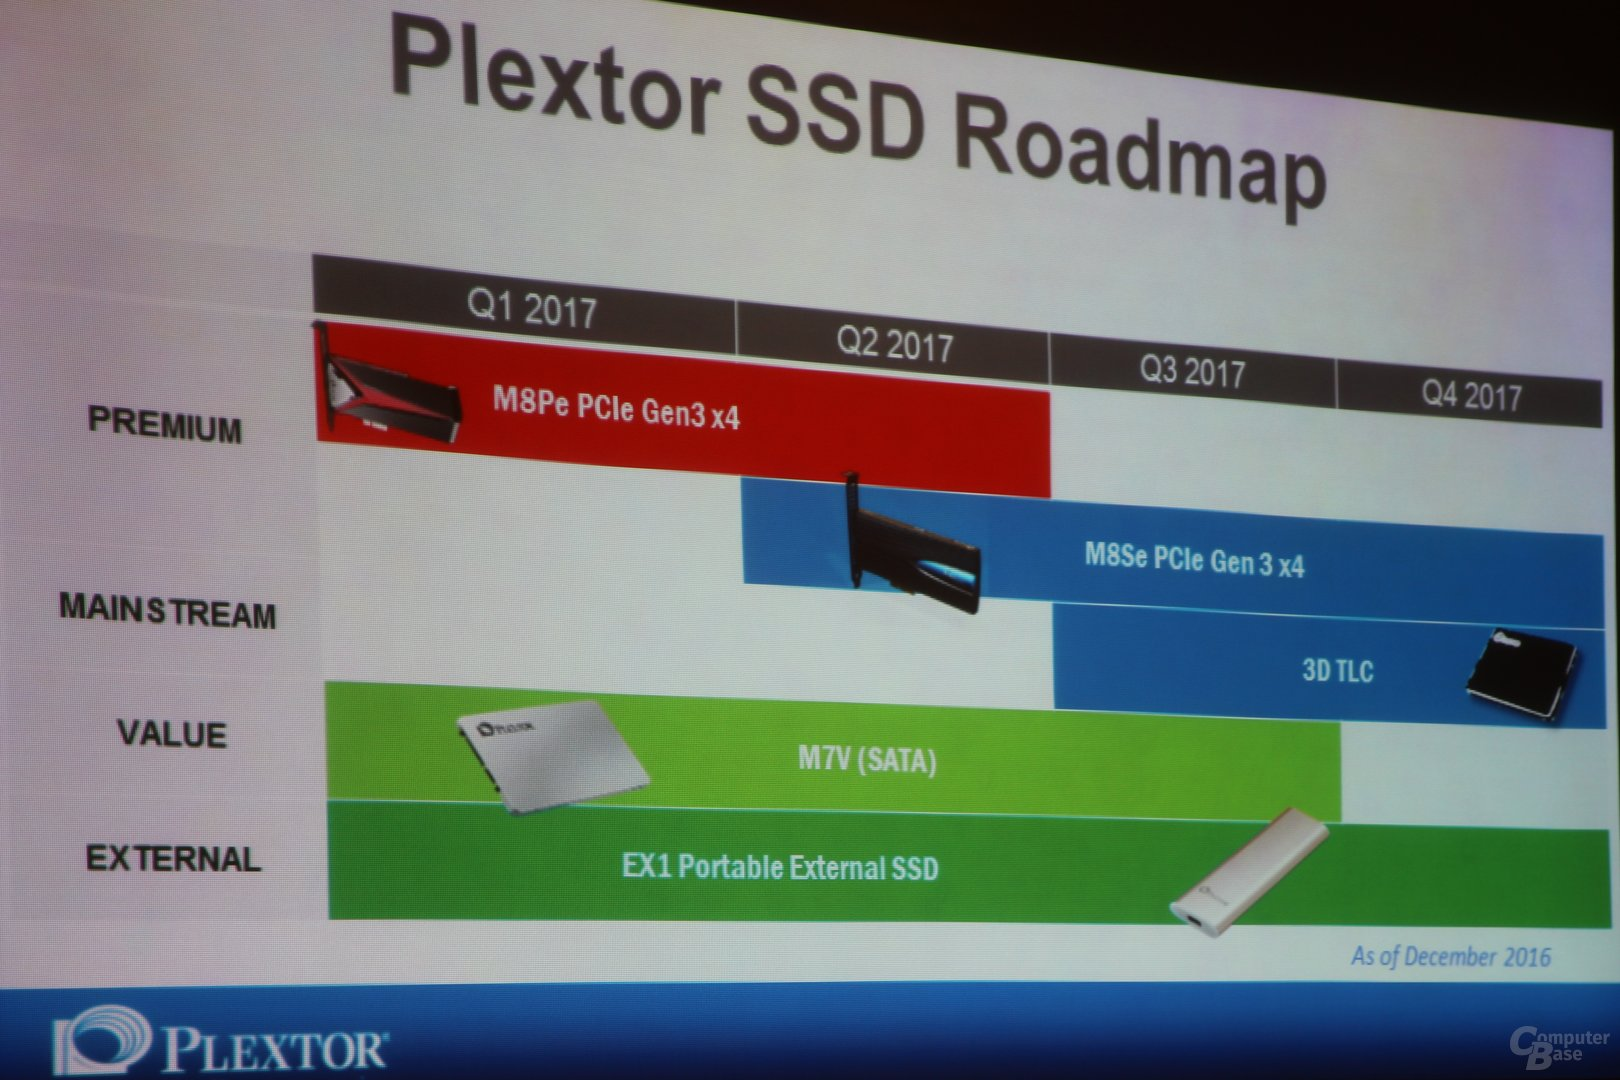 Plextor-SSD-Roadmap 2017